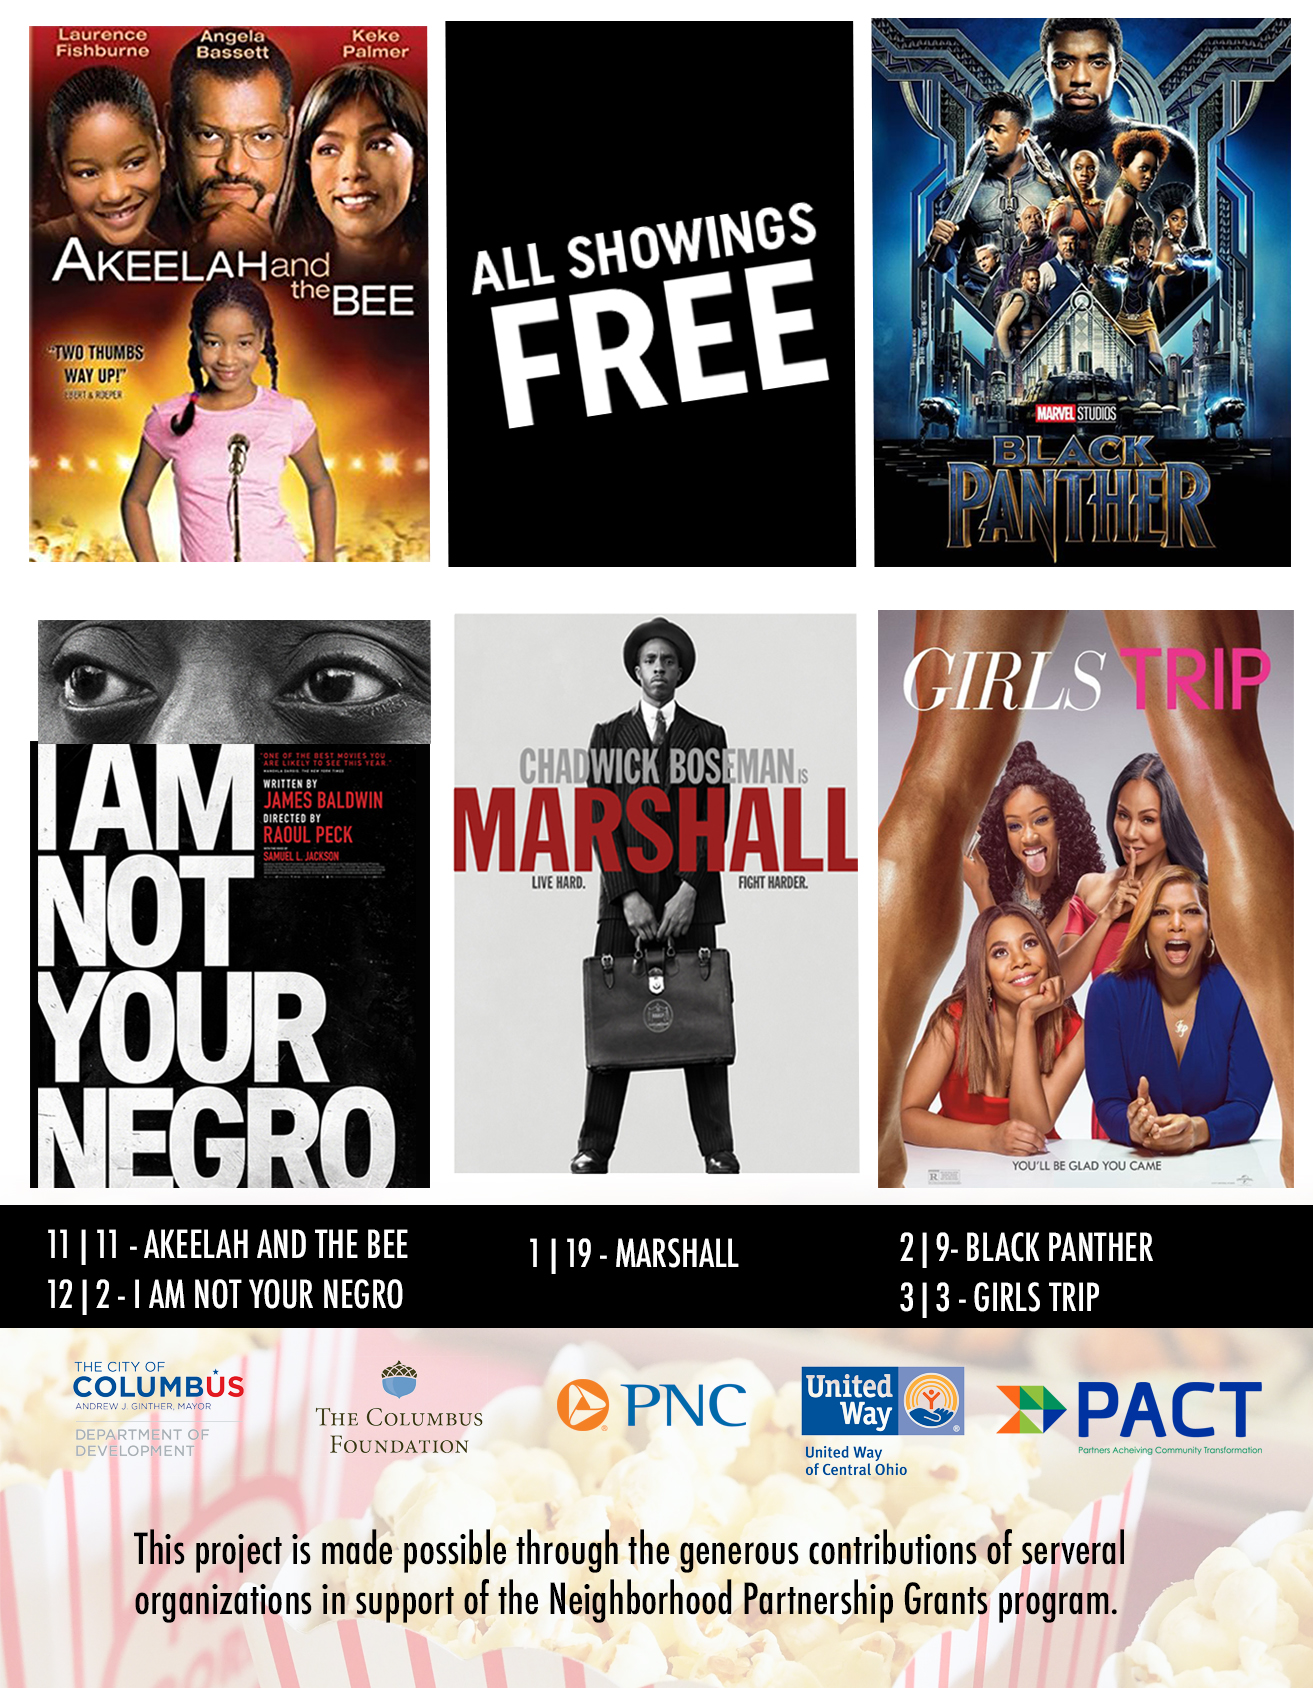 Join us for PACT Film Series - Join us for the next PACT film series – for free! Bring the entire family and watch Marshall with your family and friends at the King-Lincoln Theatre (769 E. Long St.)All doors open at 2:30 | Films begin at 3pm